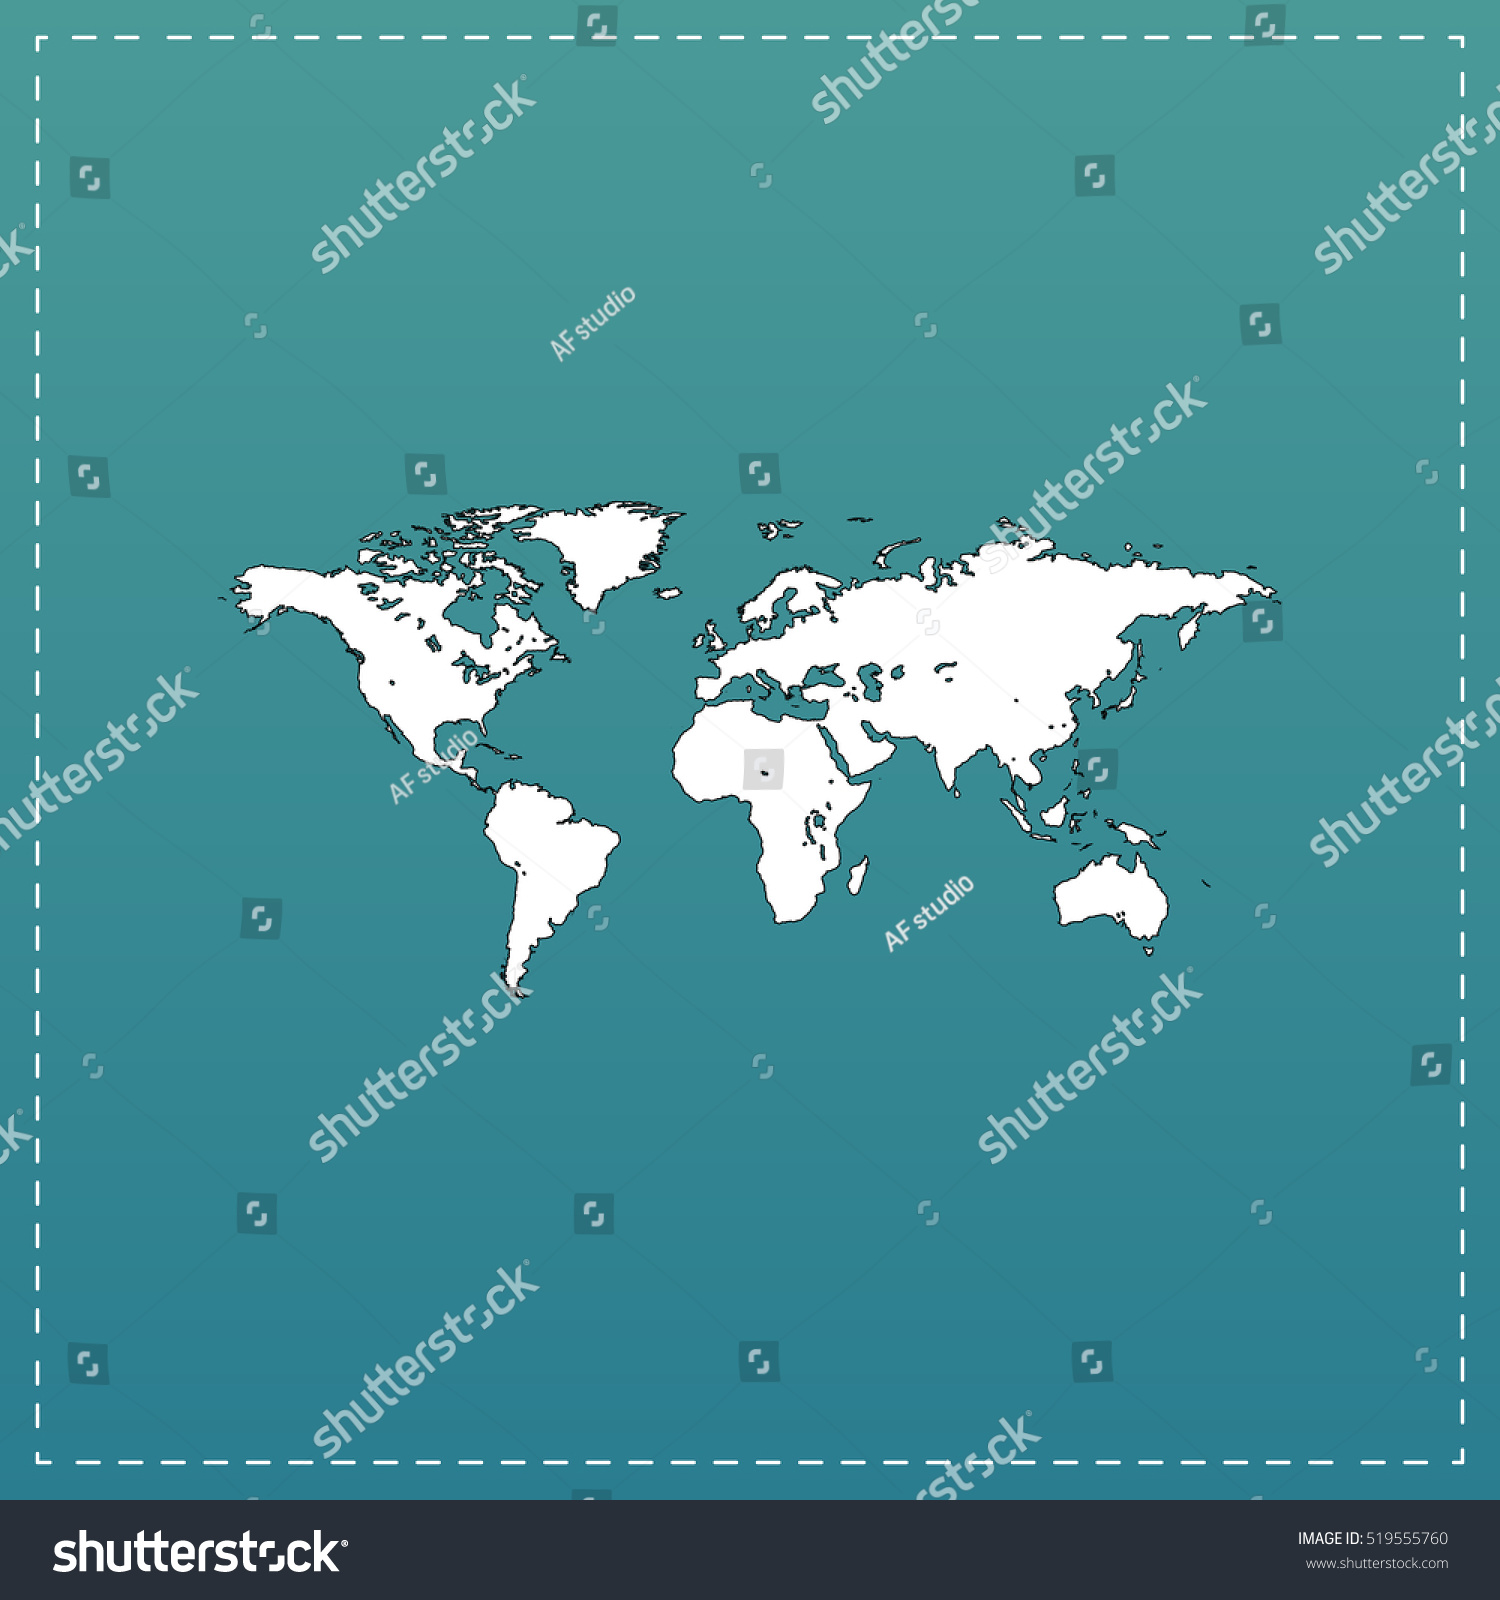 Map world white flat icon black stock vector 519555760 shutterstock map of the world white flat icon with black stroke on blue background gumiabroncs Gallery